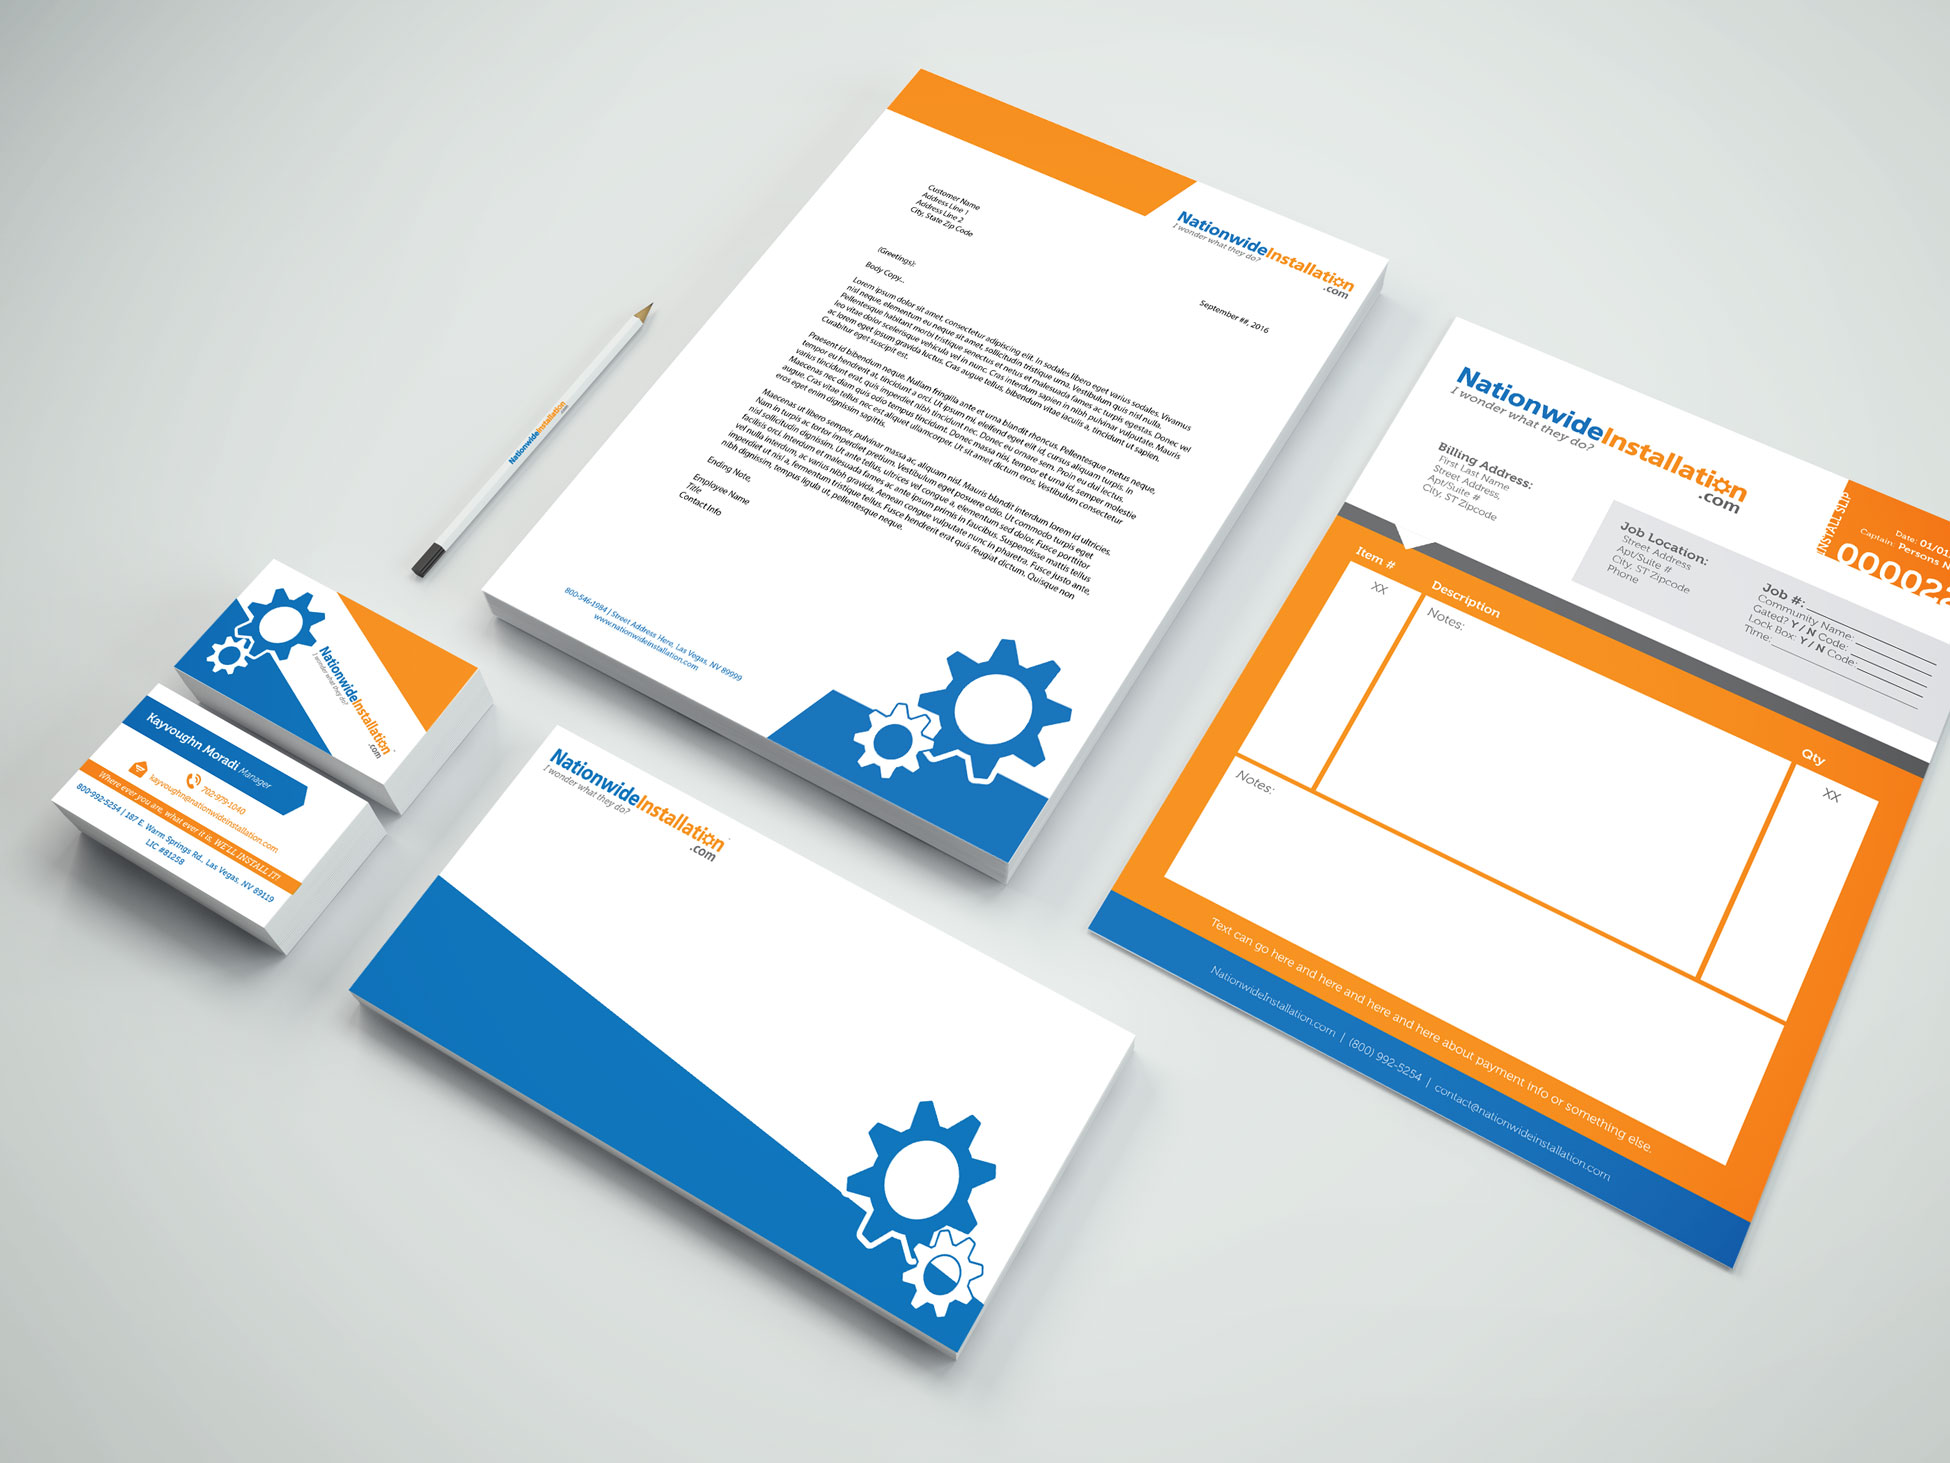 NI_Stationery_MockUp_2_WEB.jpg